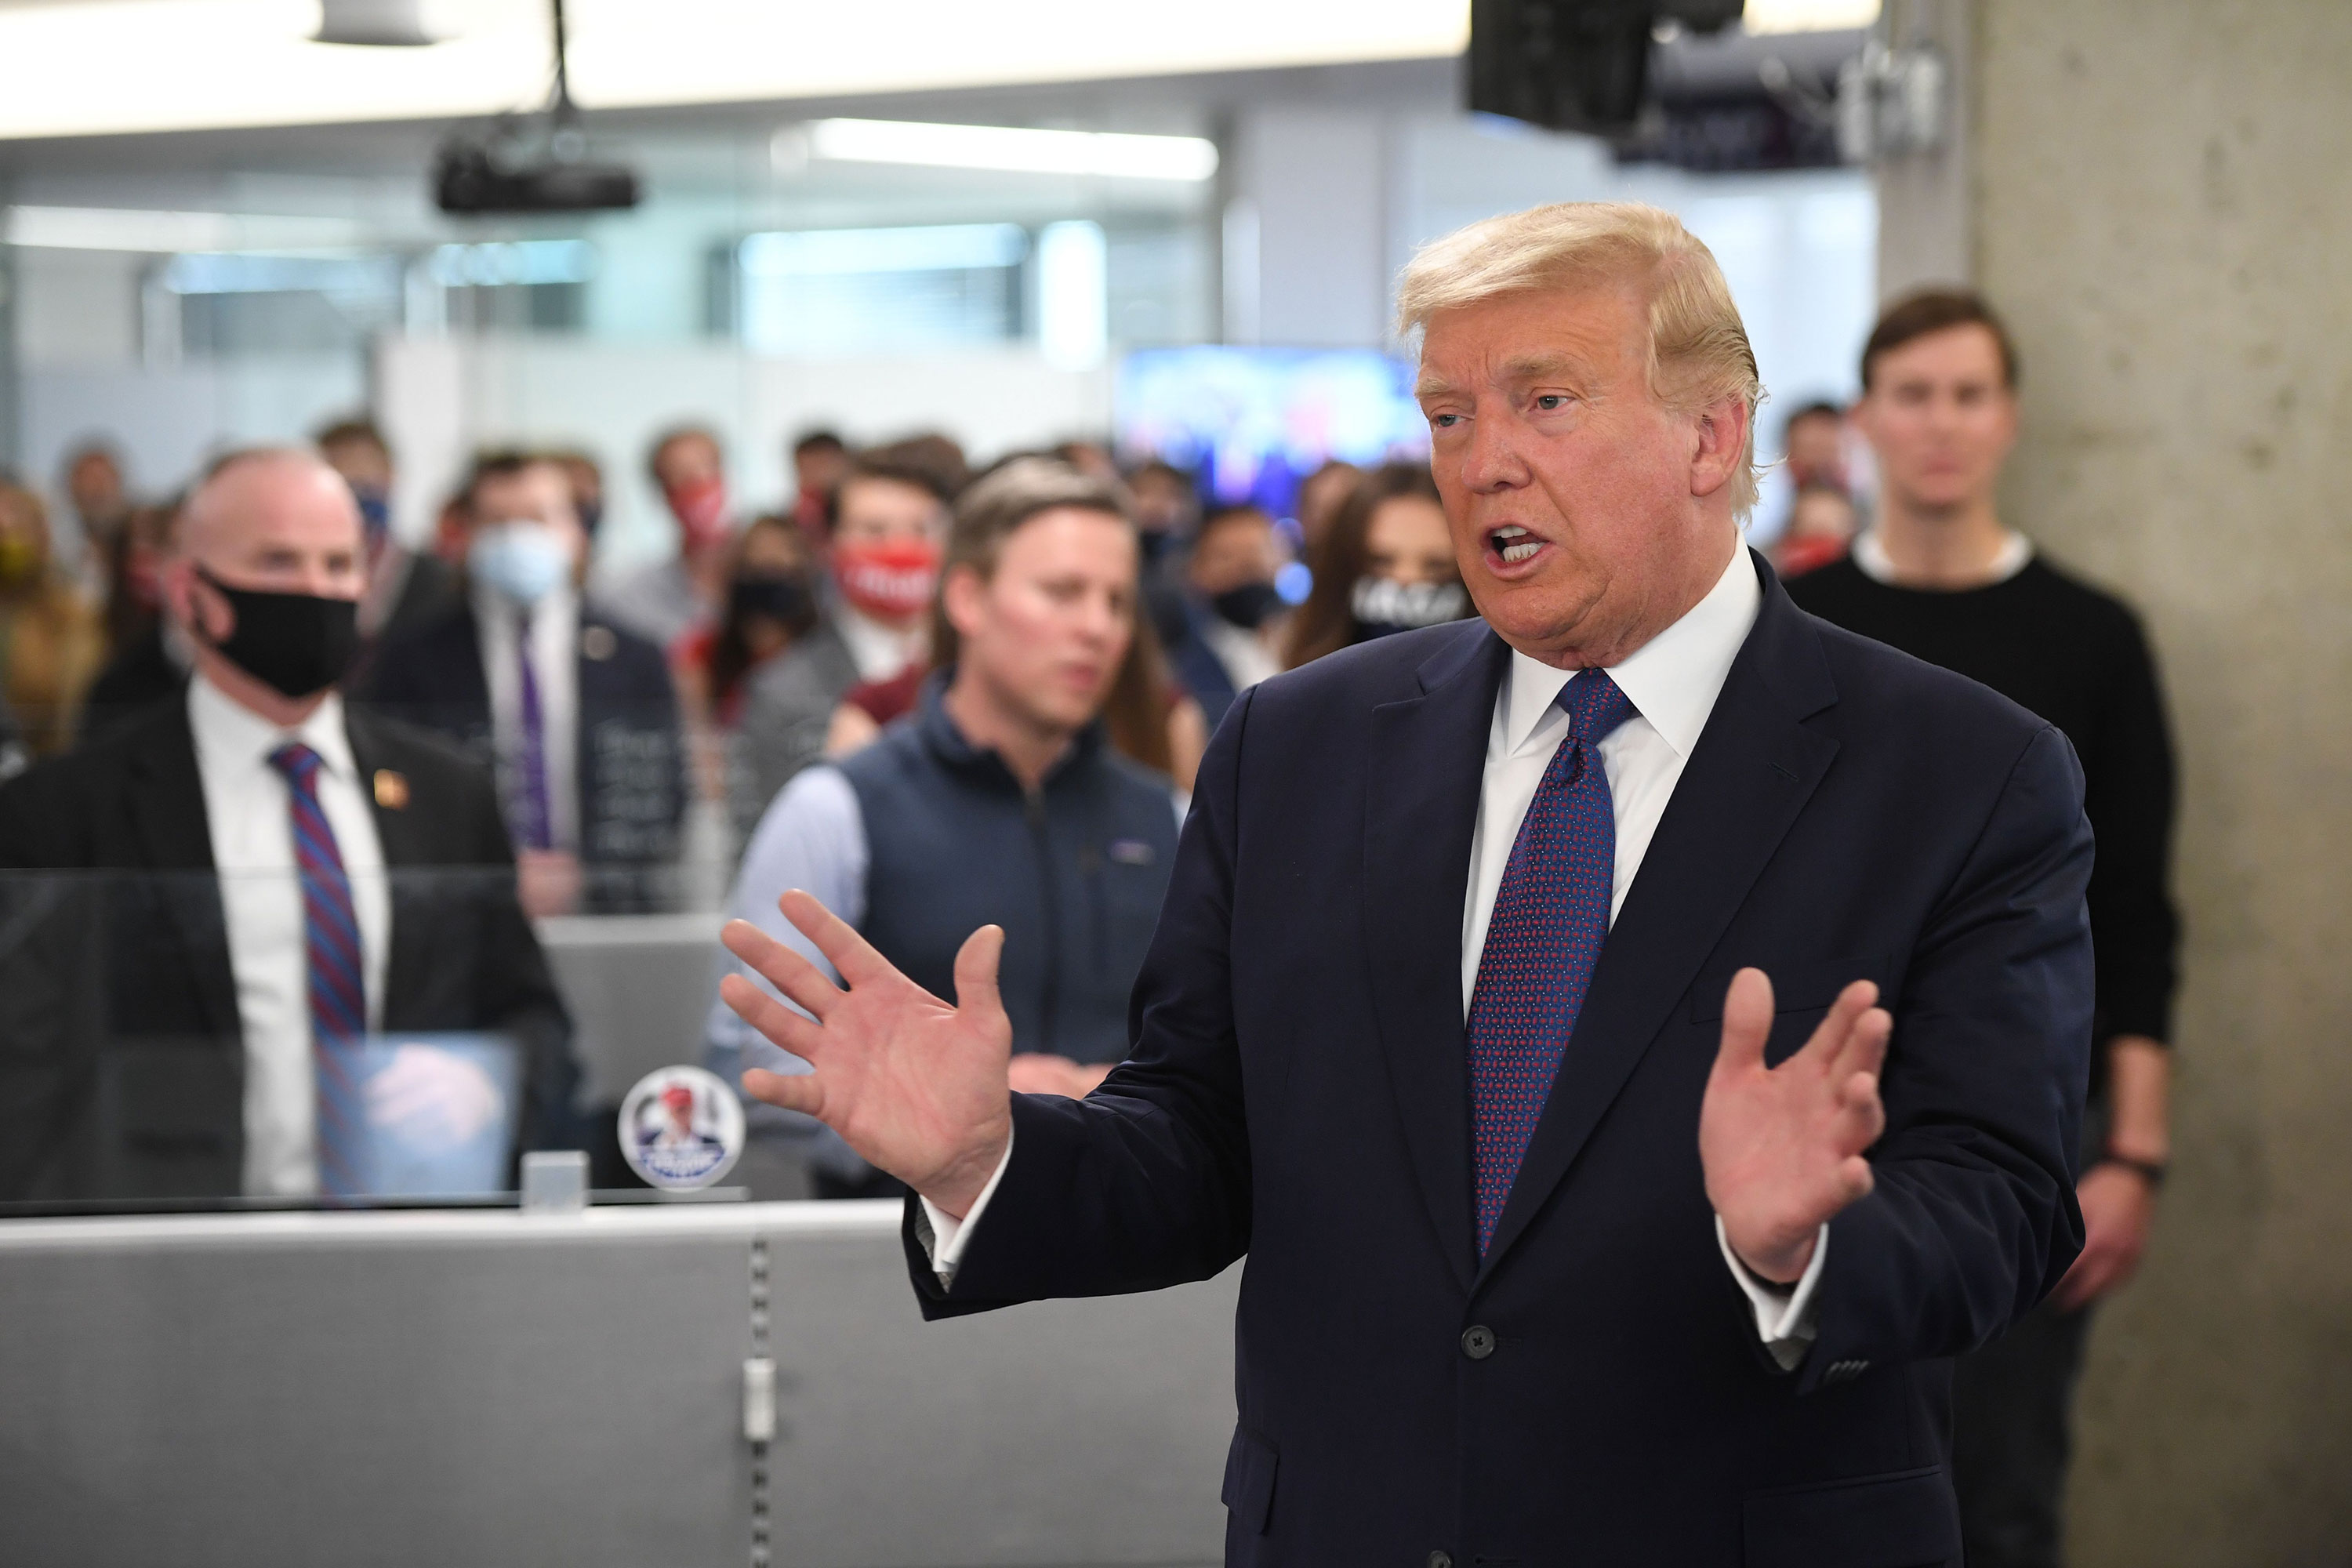 President Donald Trump visits his campaign headquarters in Arlington, Virginia on November 3.